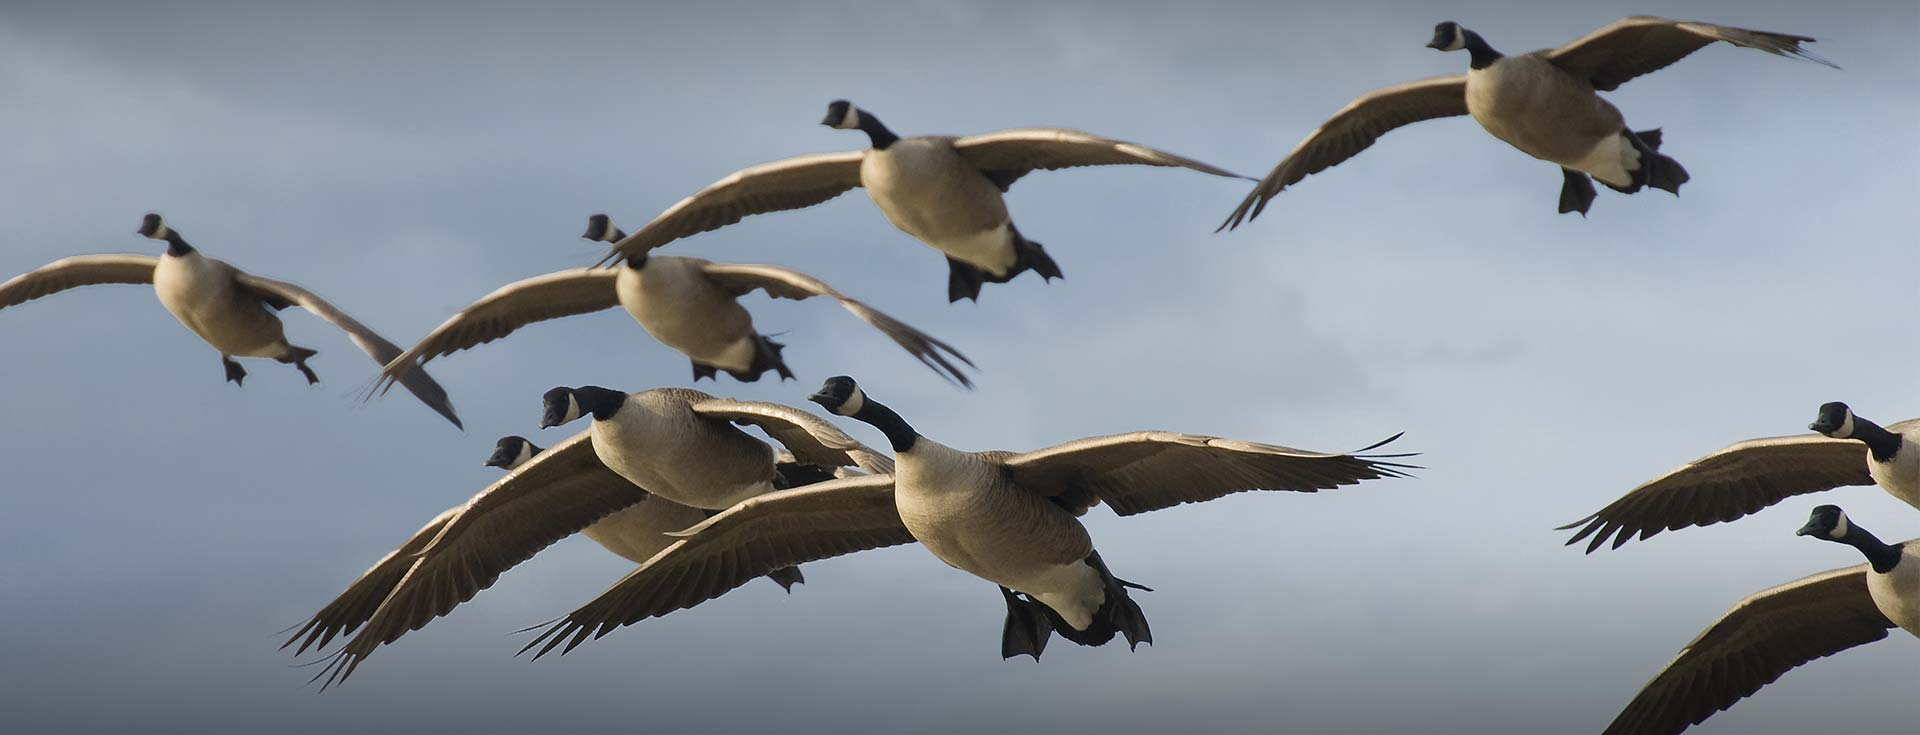 Guided Goose Hunting Packages